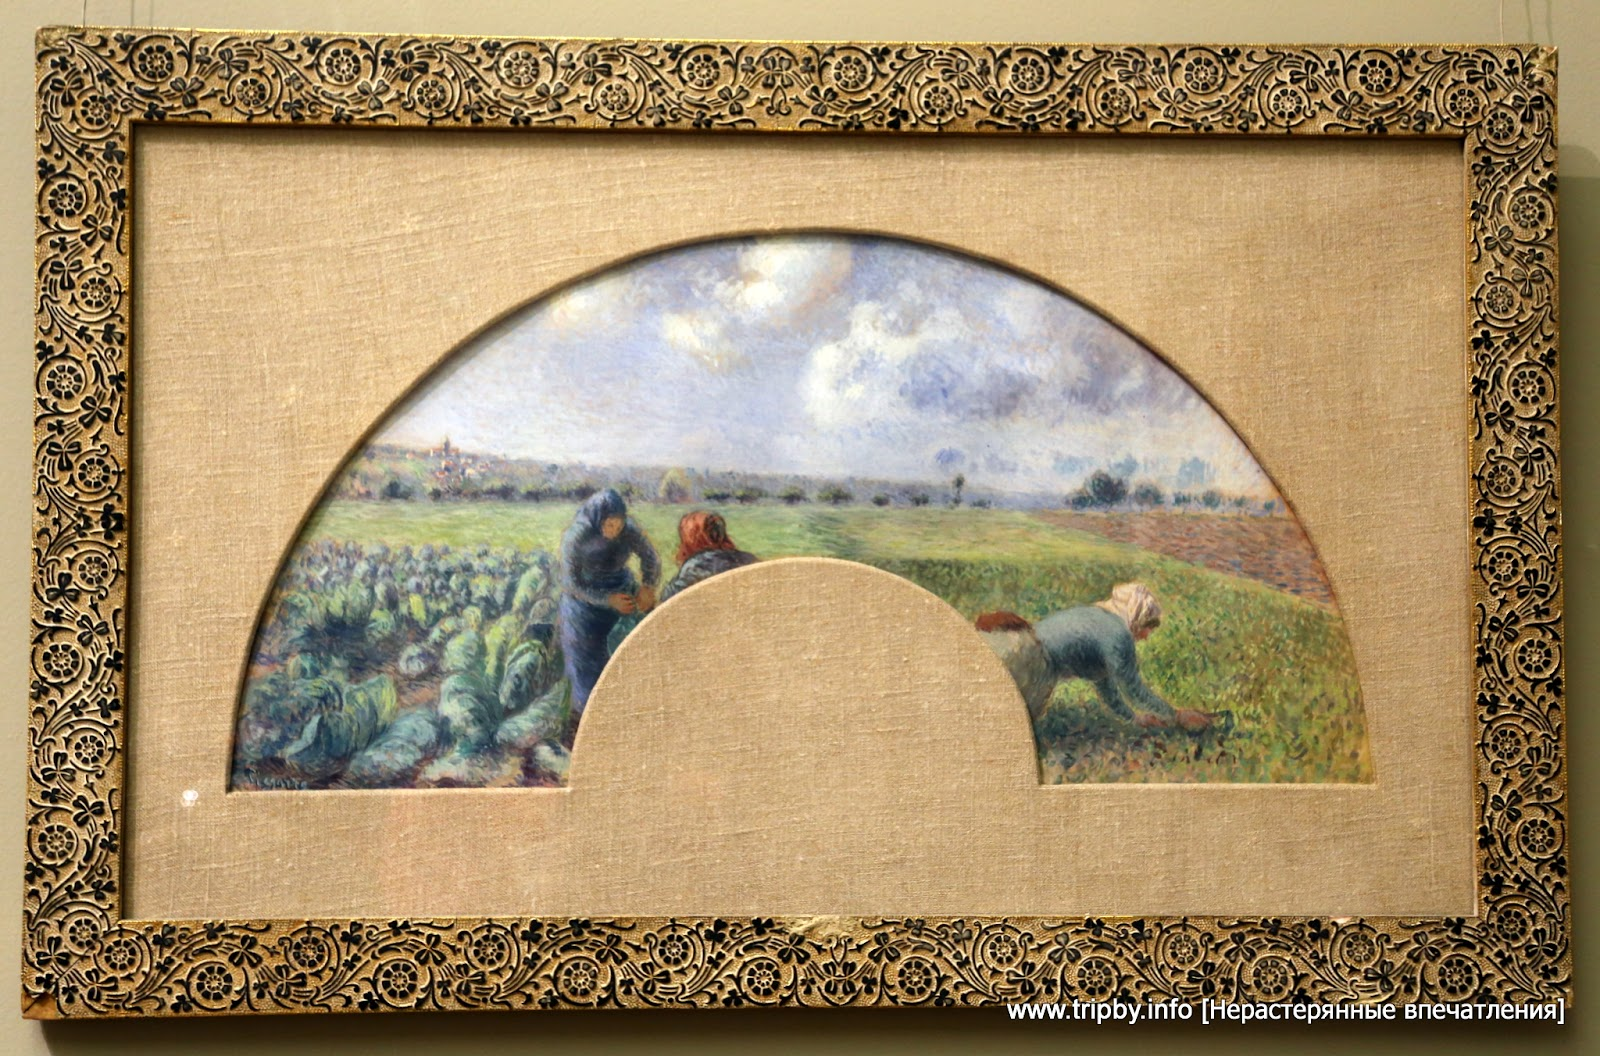 Fan Mount: The Cabbage Gatherers Camille Pissarro